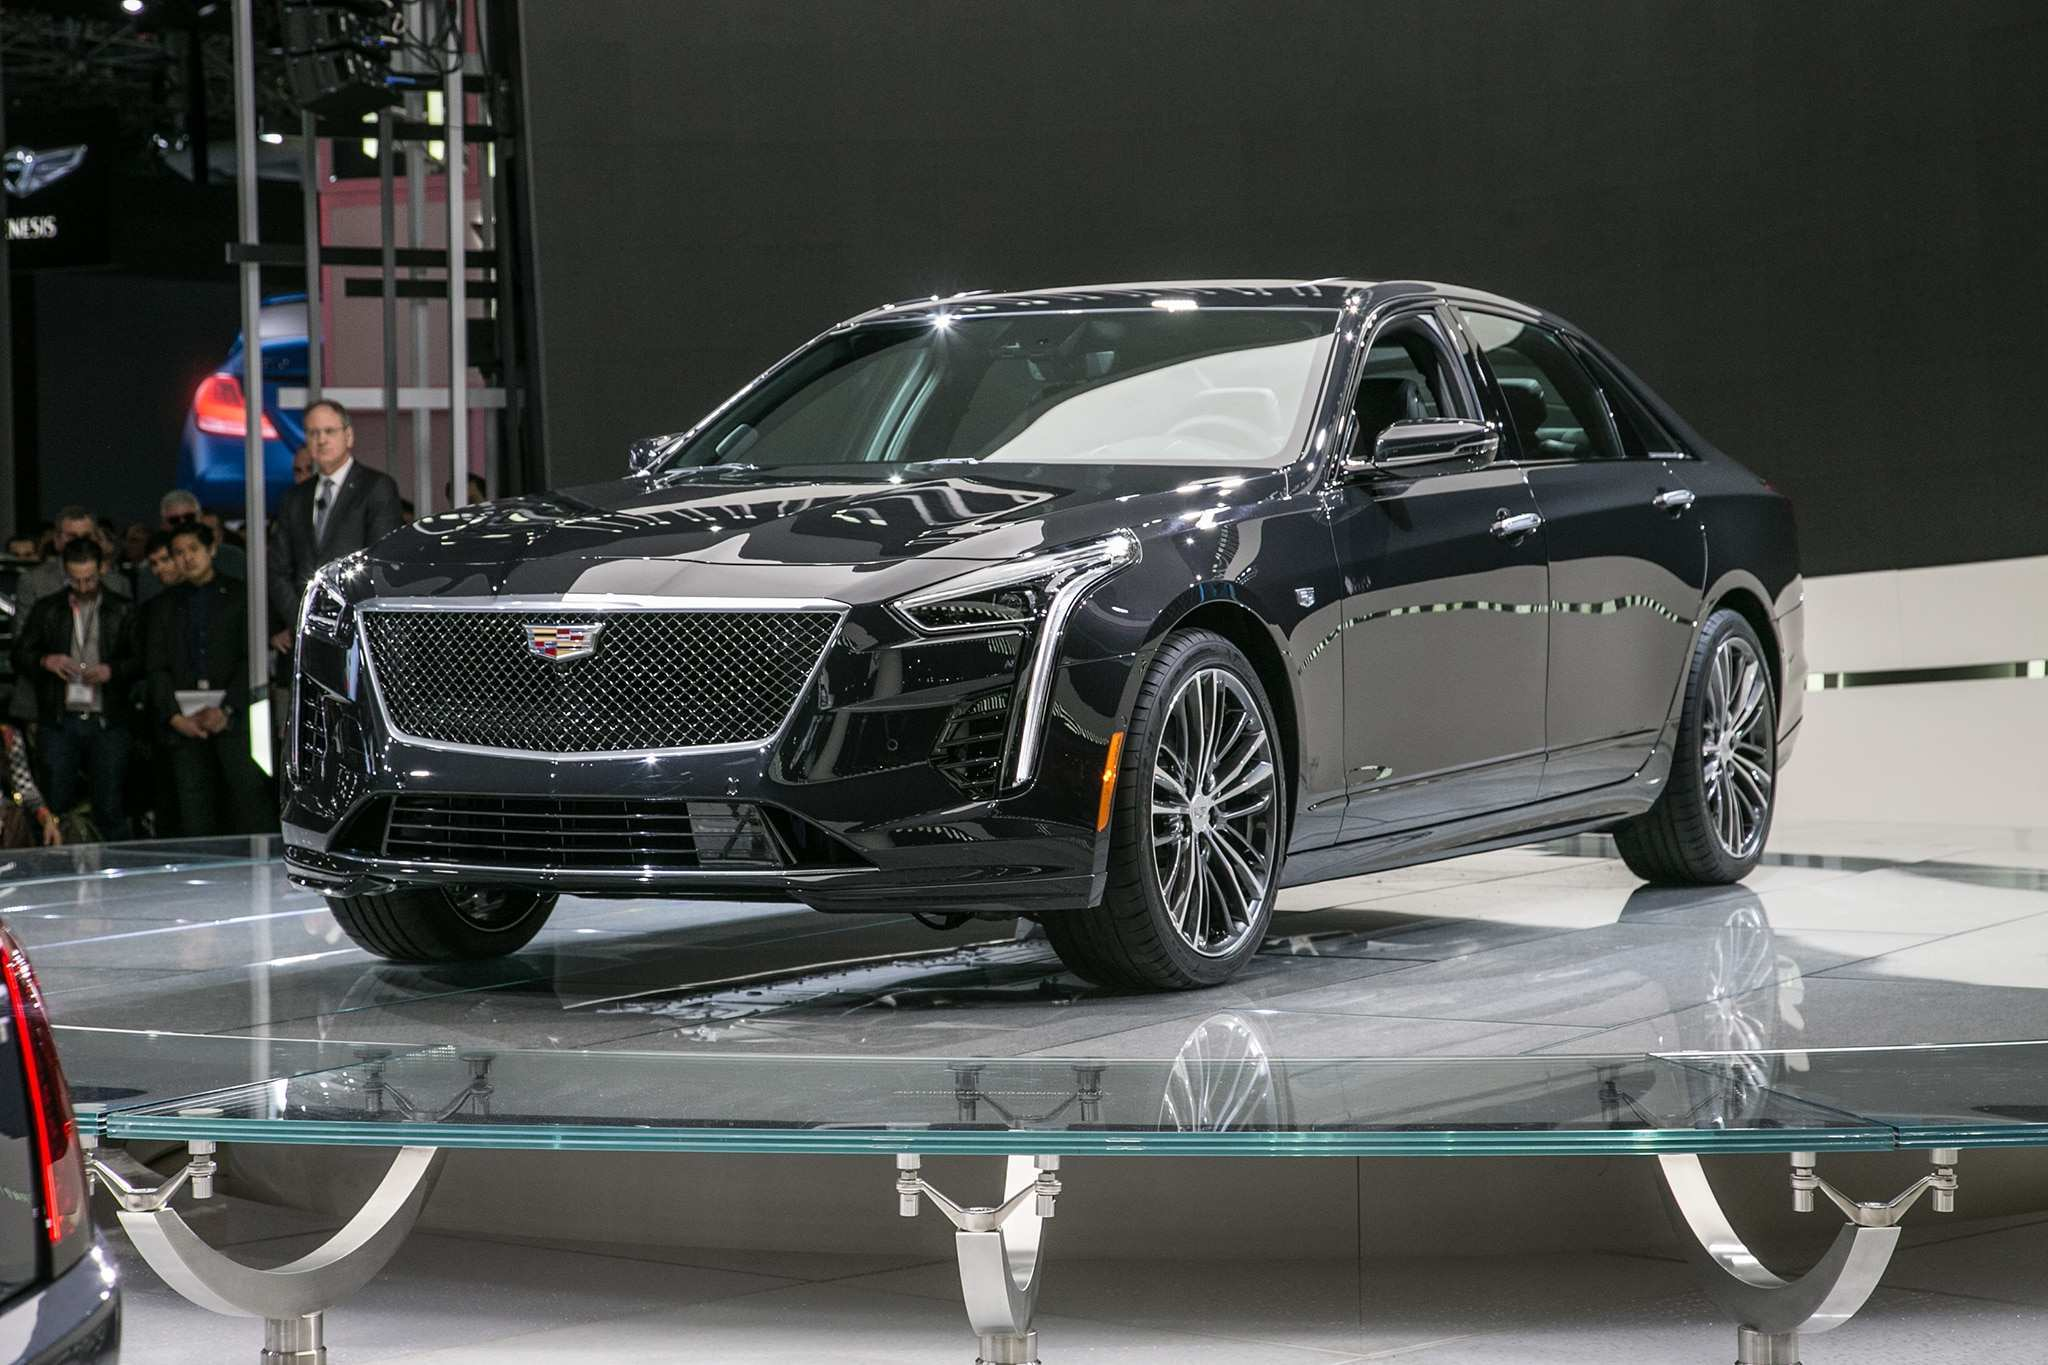 31 Best Review Cadillac 2019 Launches Engine Photos for Cadillac 2019 Launches Engine